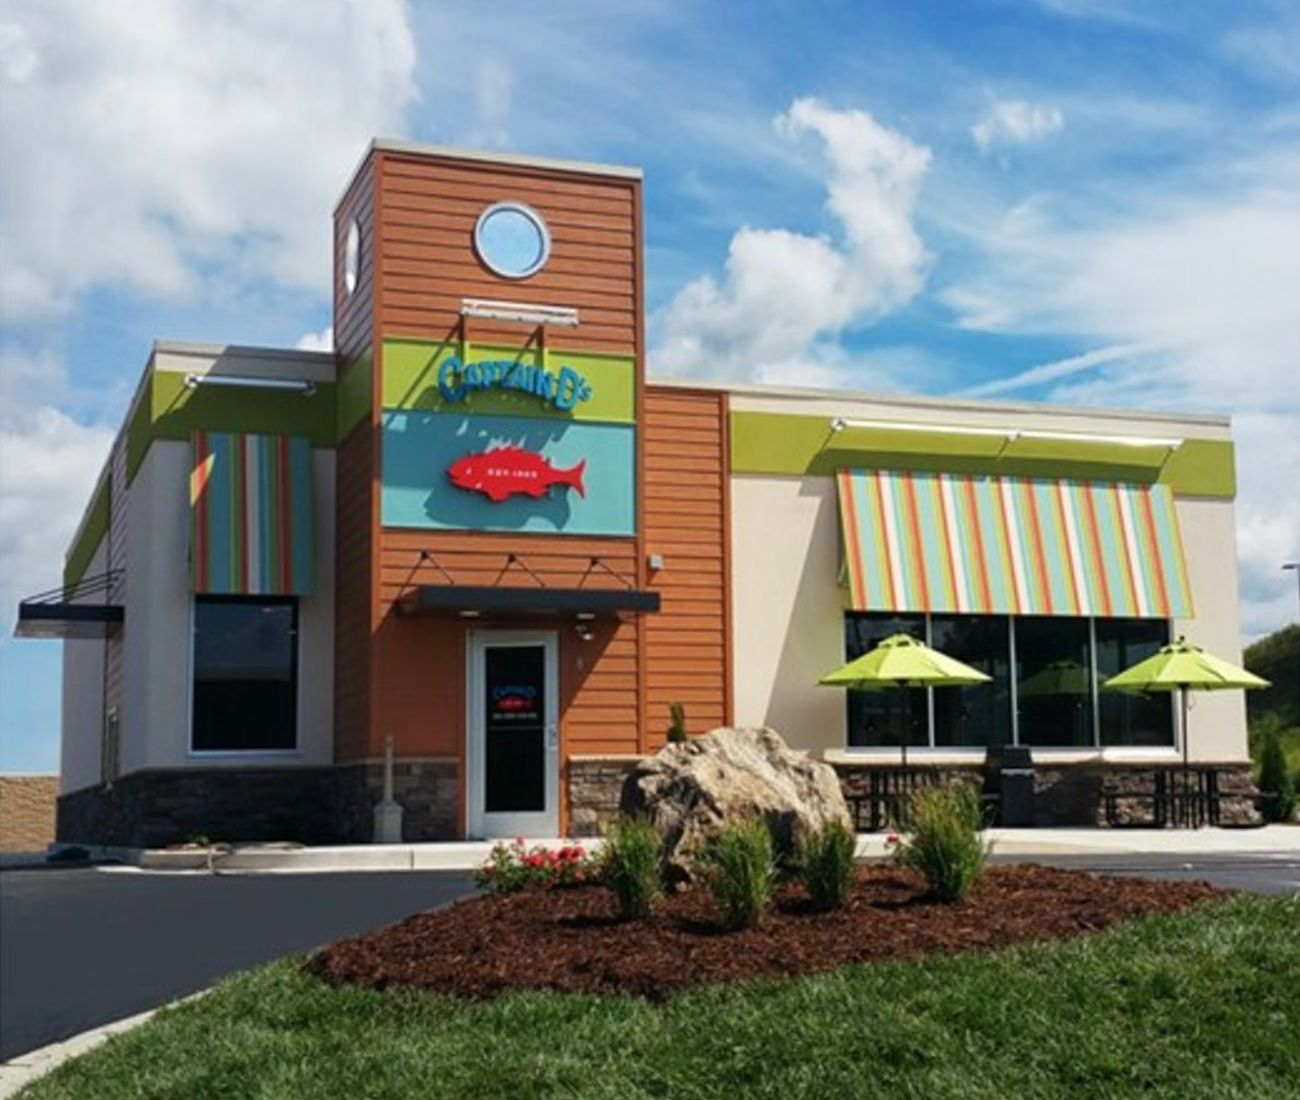 Captain D's Signs Franchise Development Agreements to Expand Footprint Nationwide